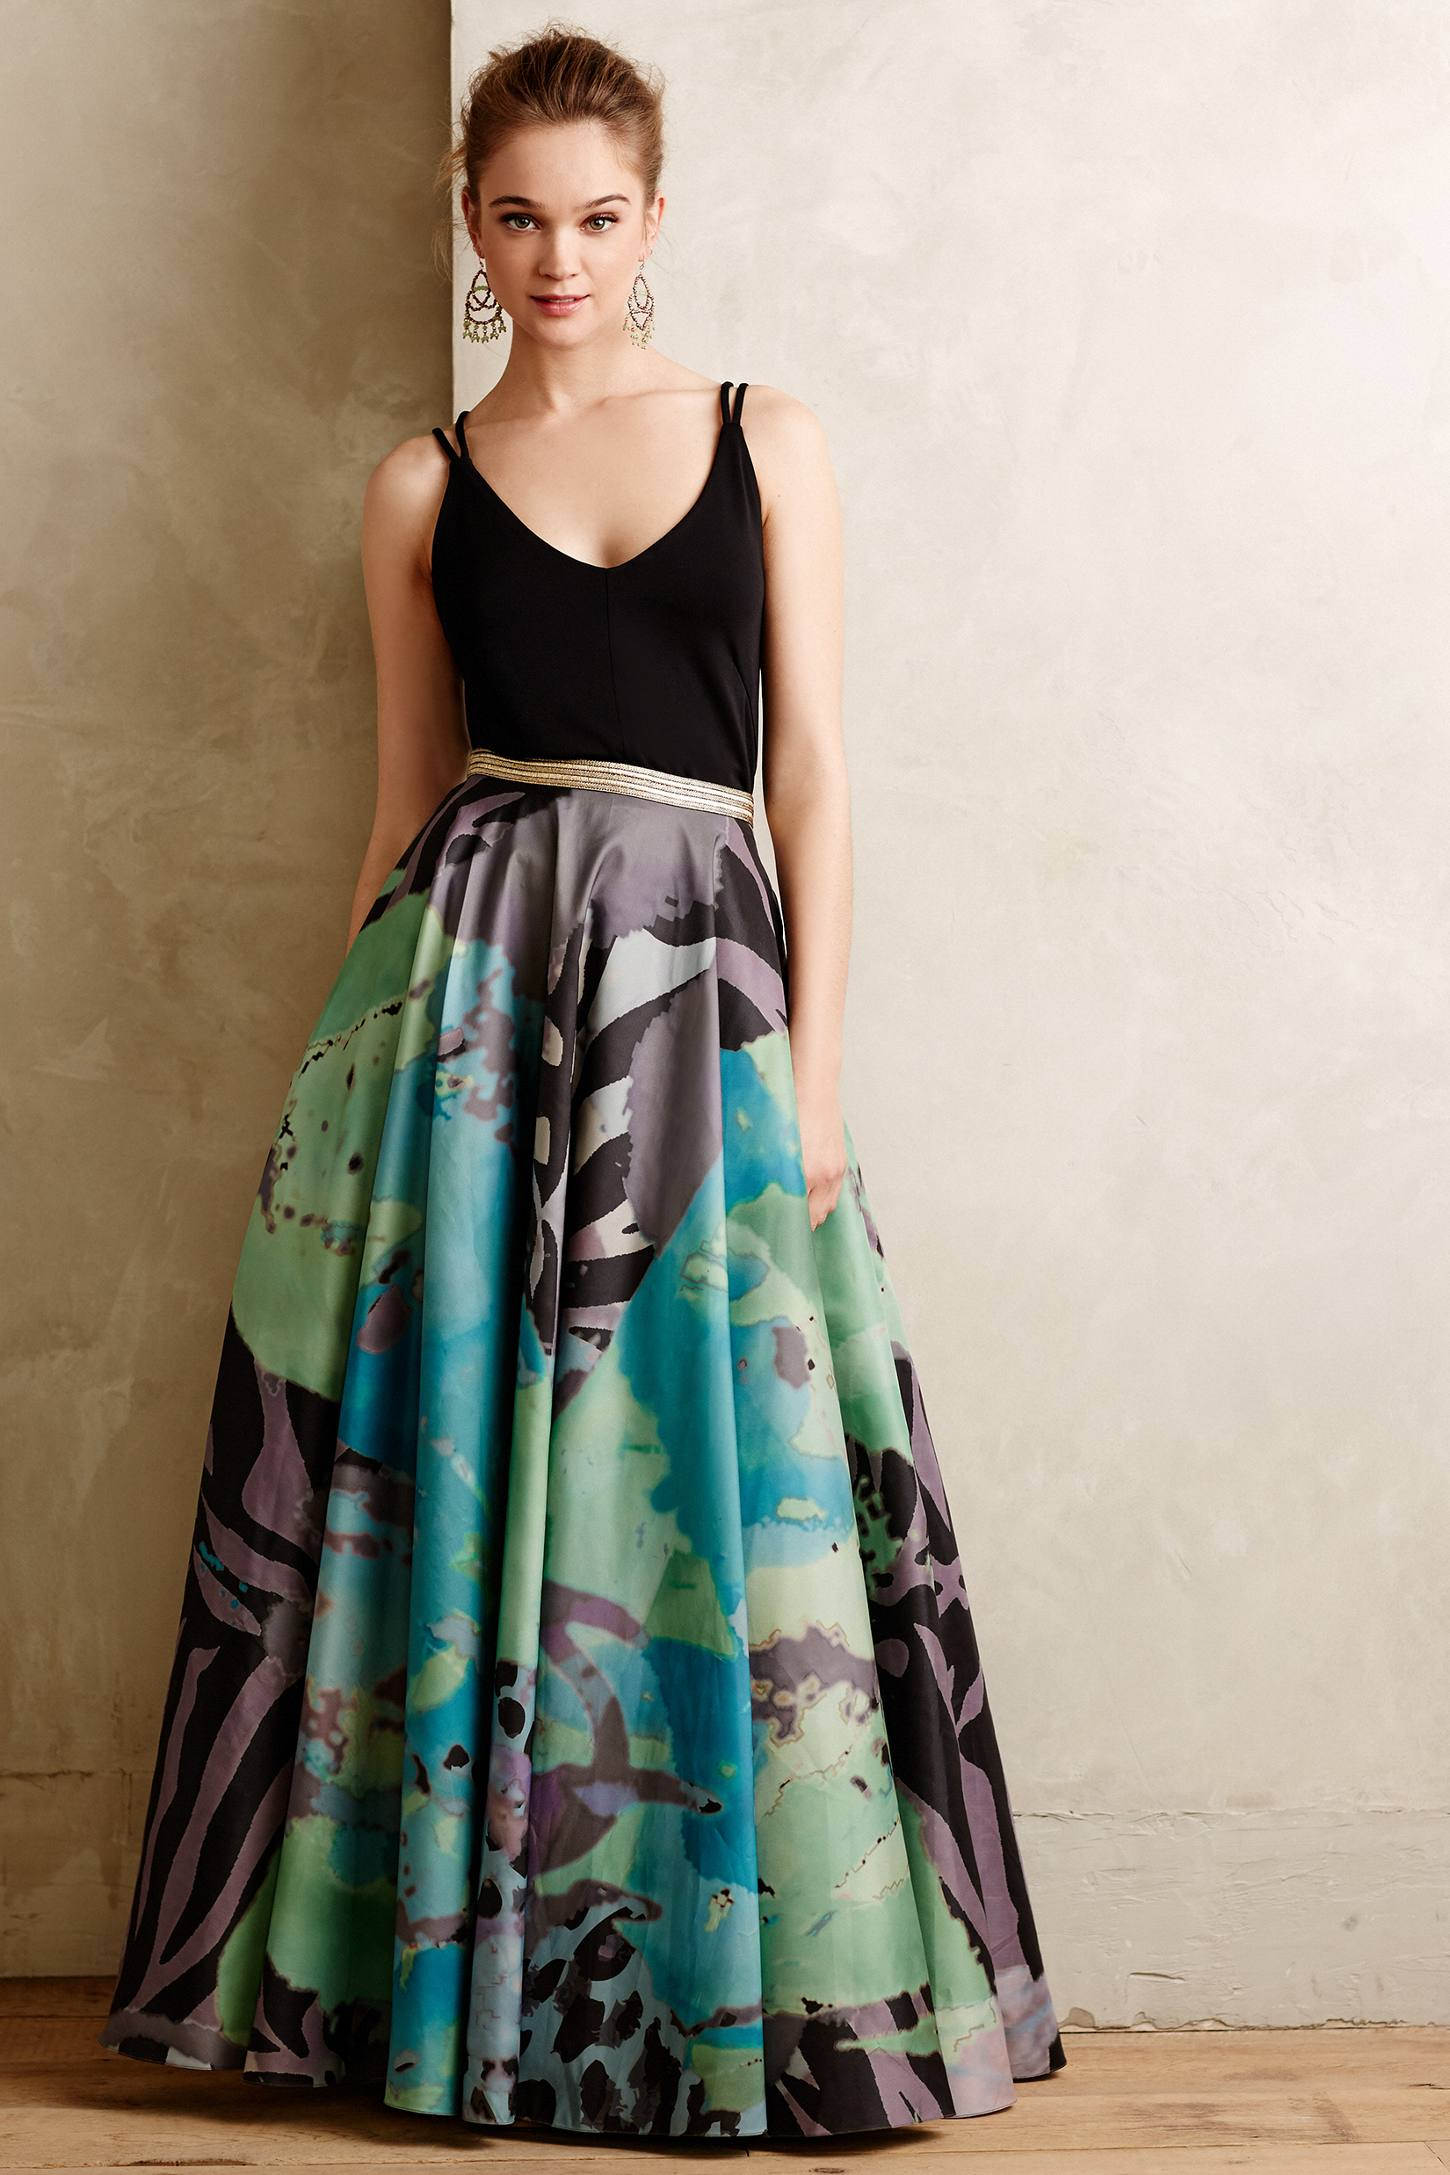 Formal Ball Skirts - Dress Ala